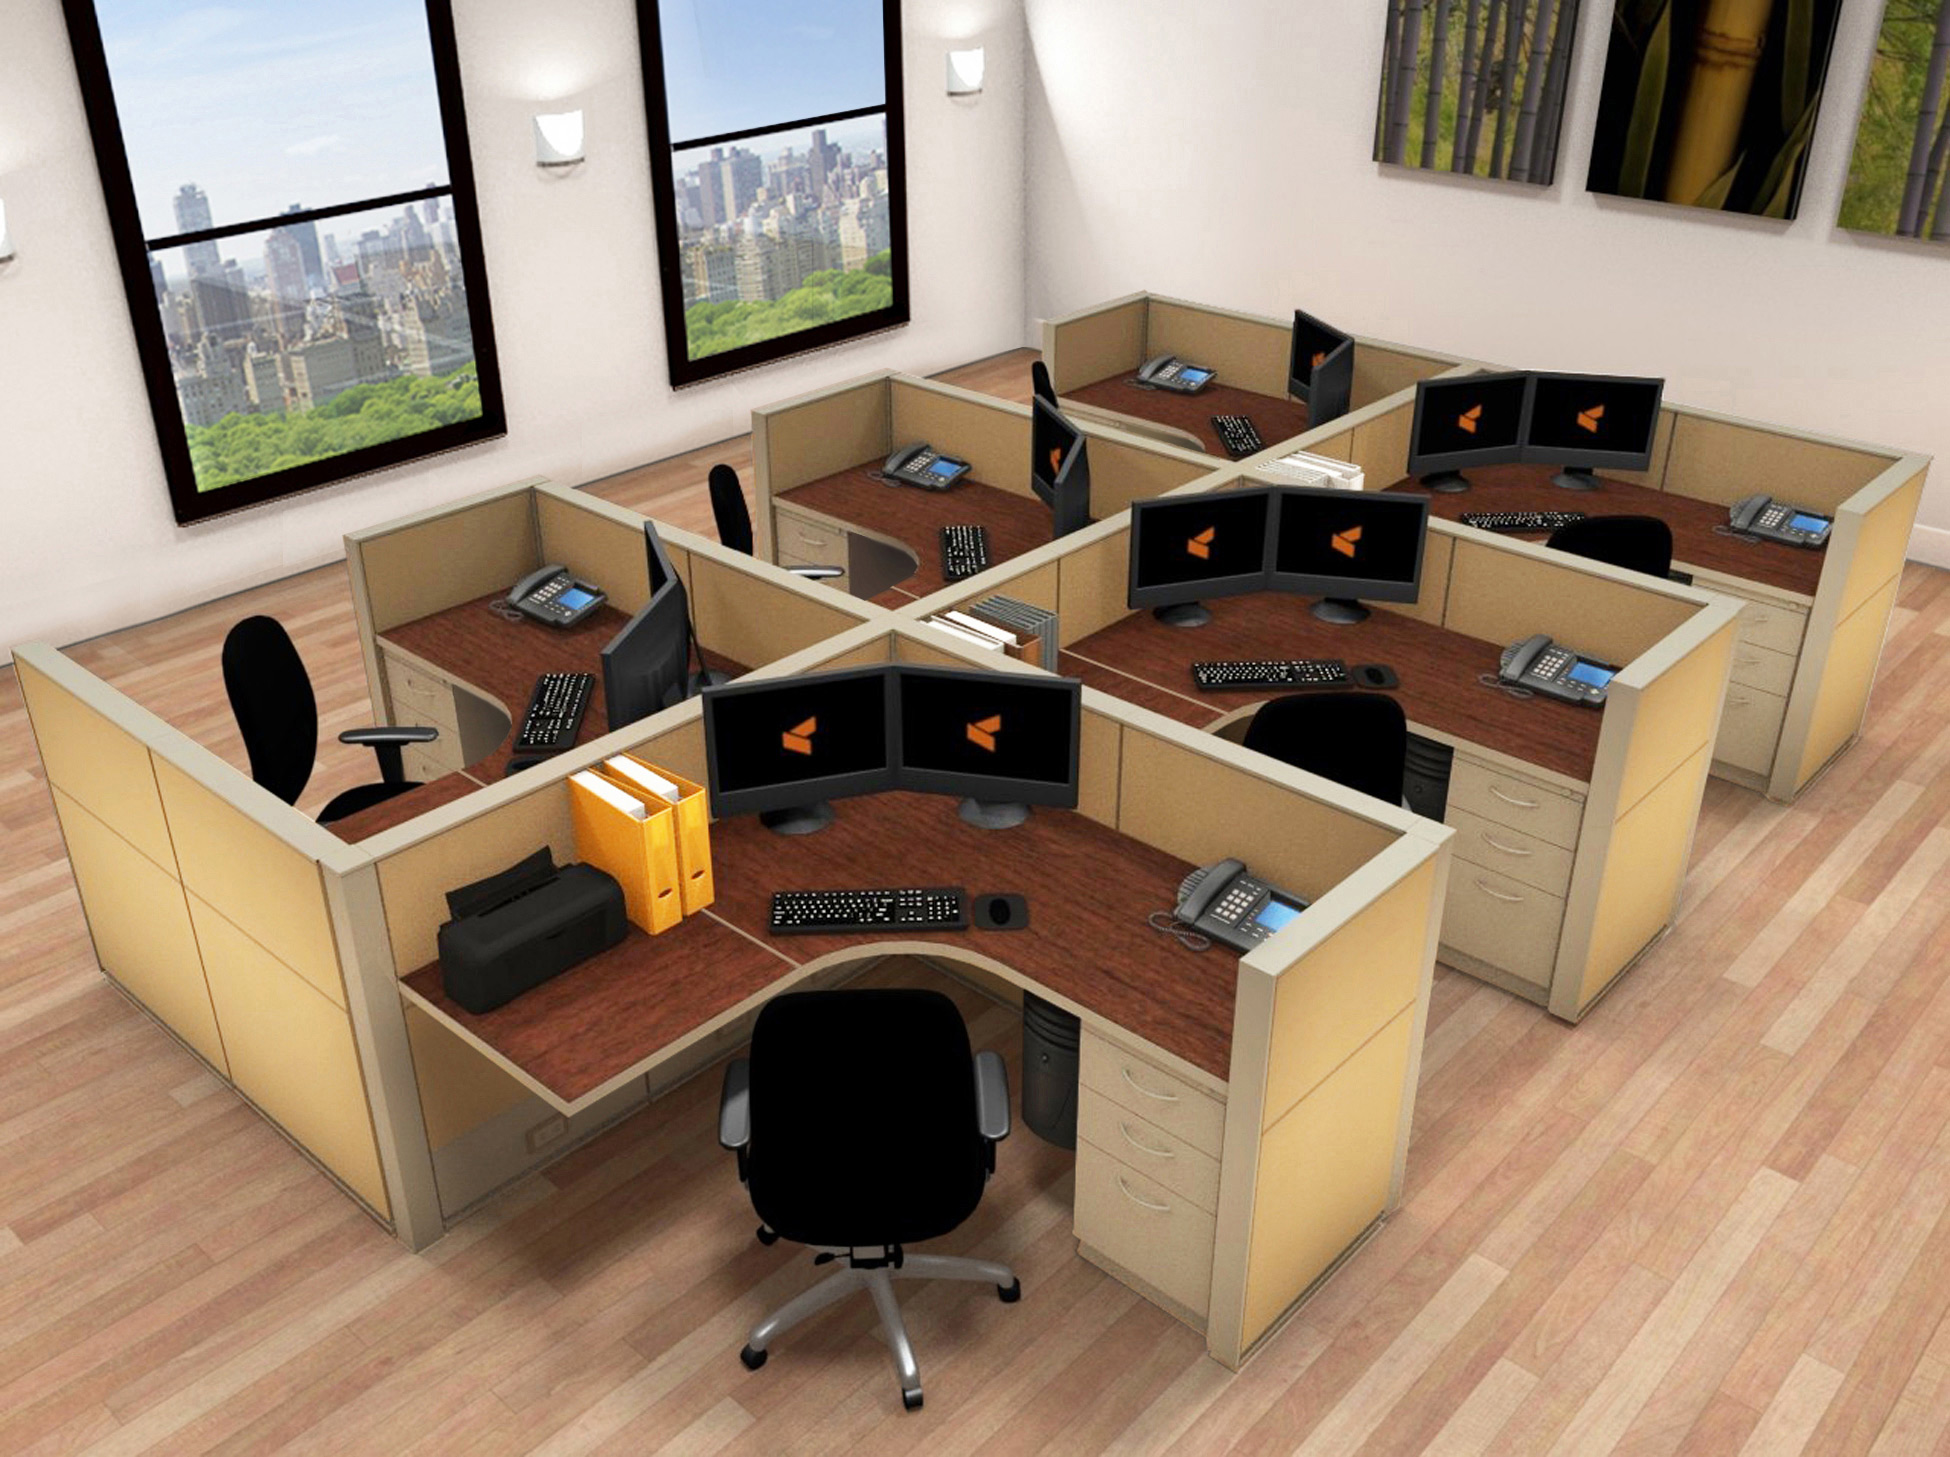 Systems Furniture  5x5 Cubicle Workstations  Cubicle Systems